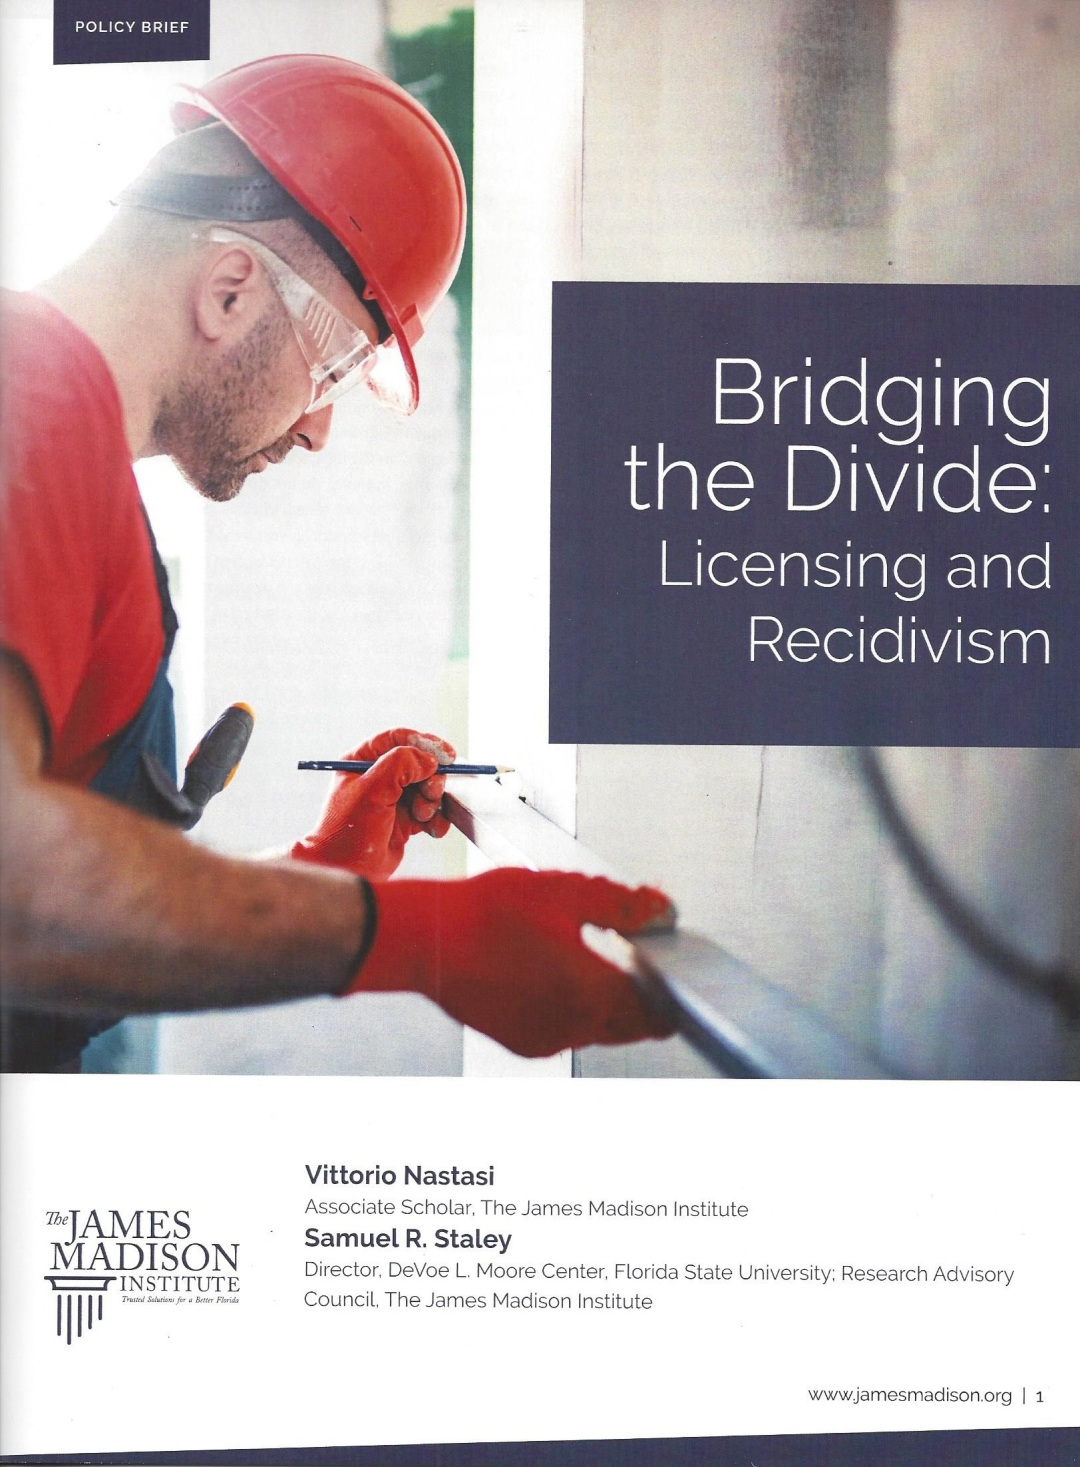 Bridging the Divide: Licensing and Recidivism